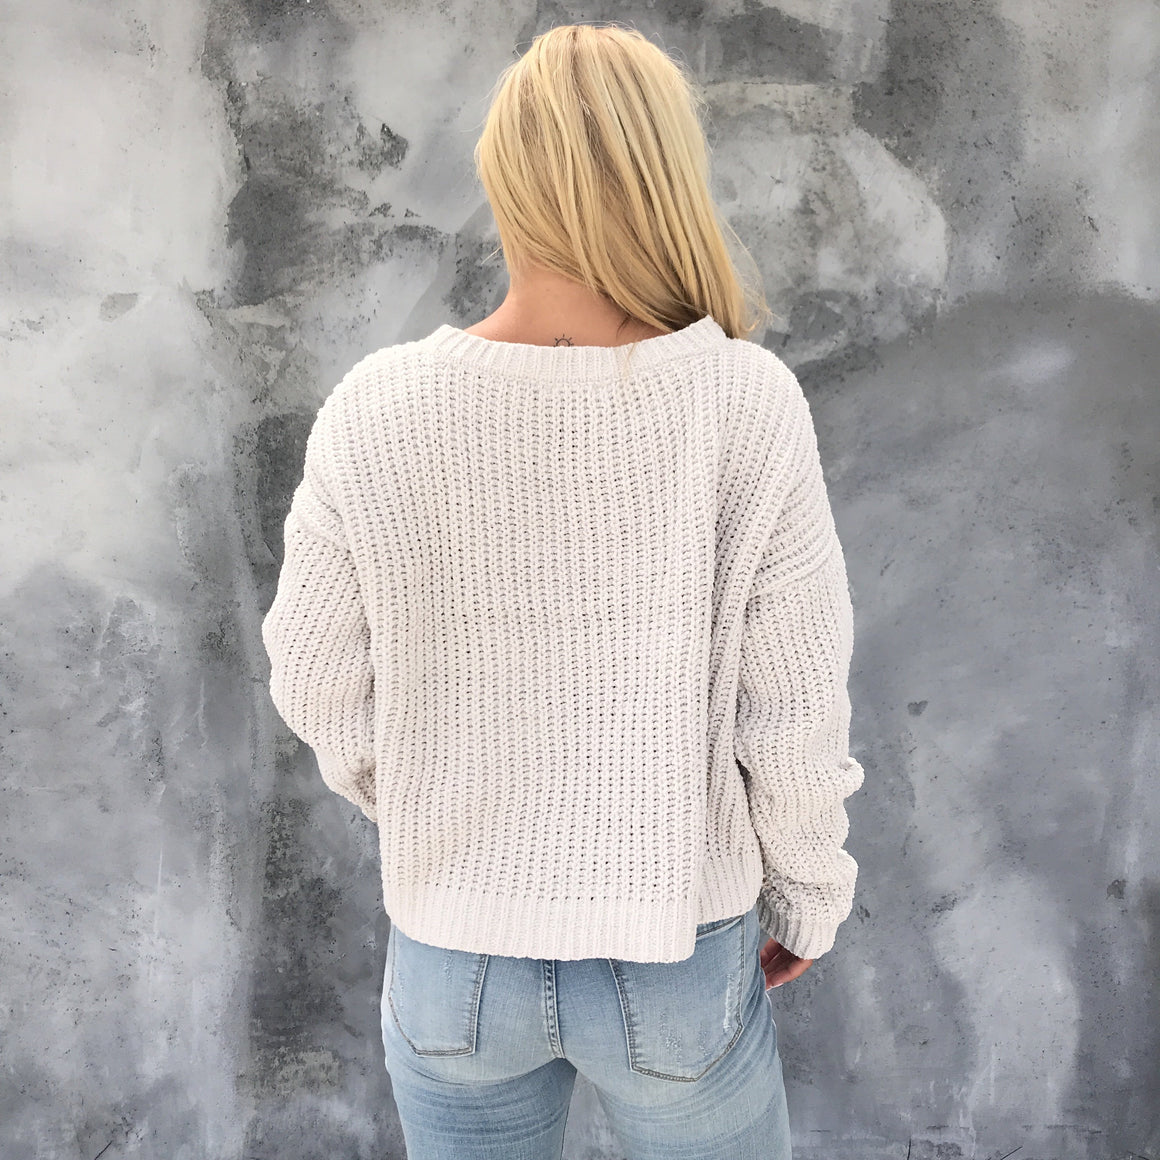 Let's Get Cozy Knit Sweater in Stone - Dainty Hooligan